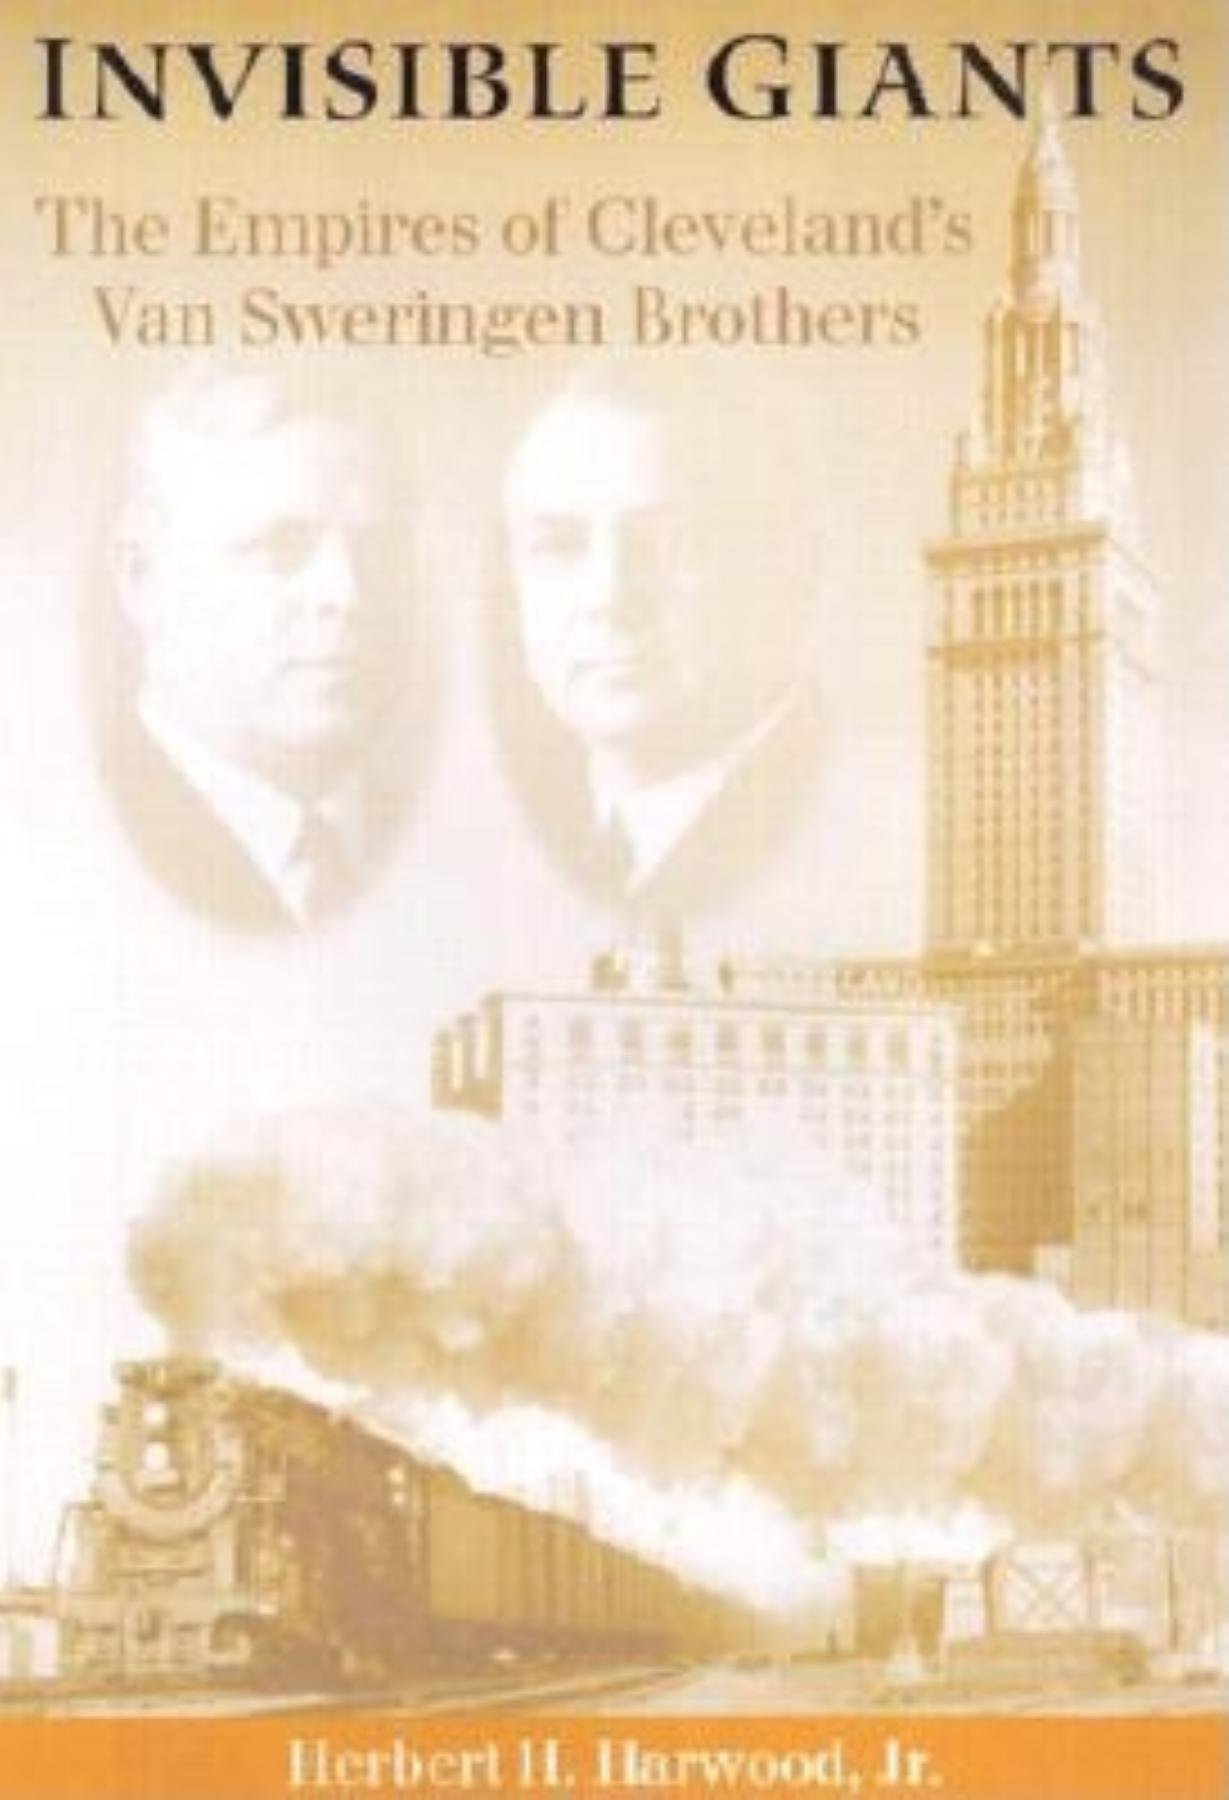 Invisible Giants: The Empires of Cleveland's Van Sweringen Brothers (Ohio) PDF